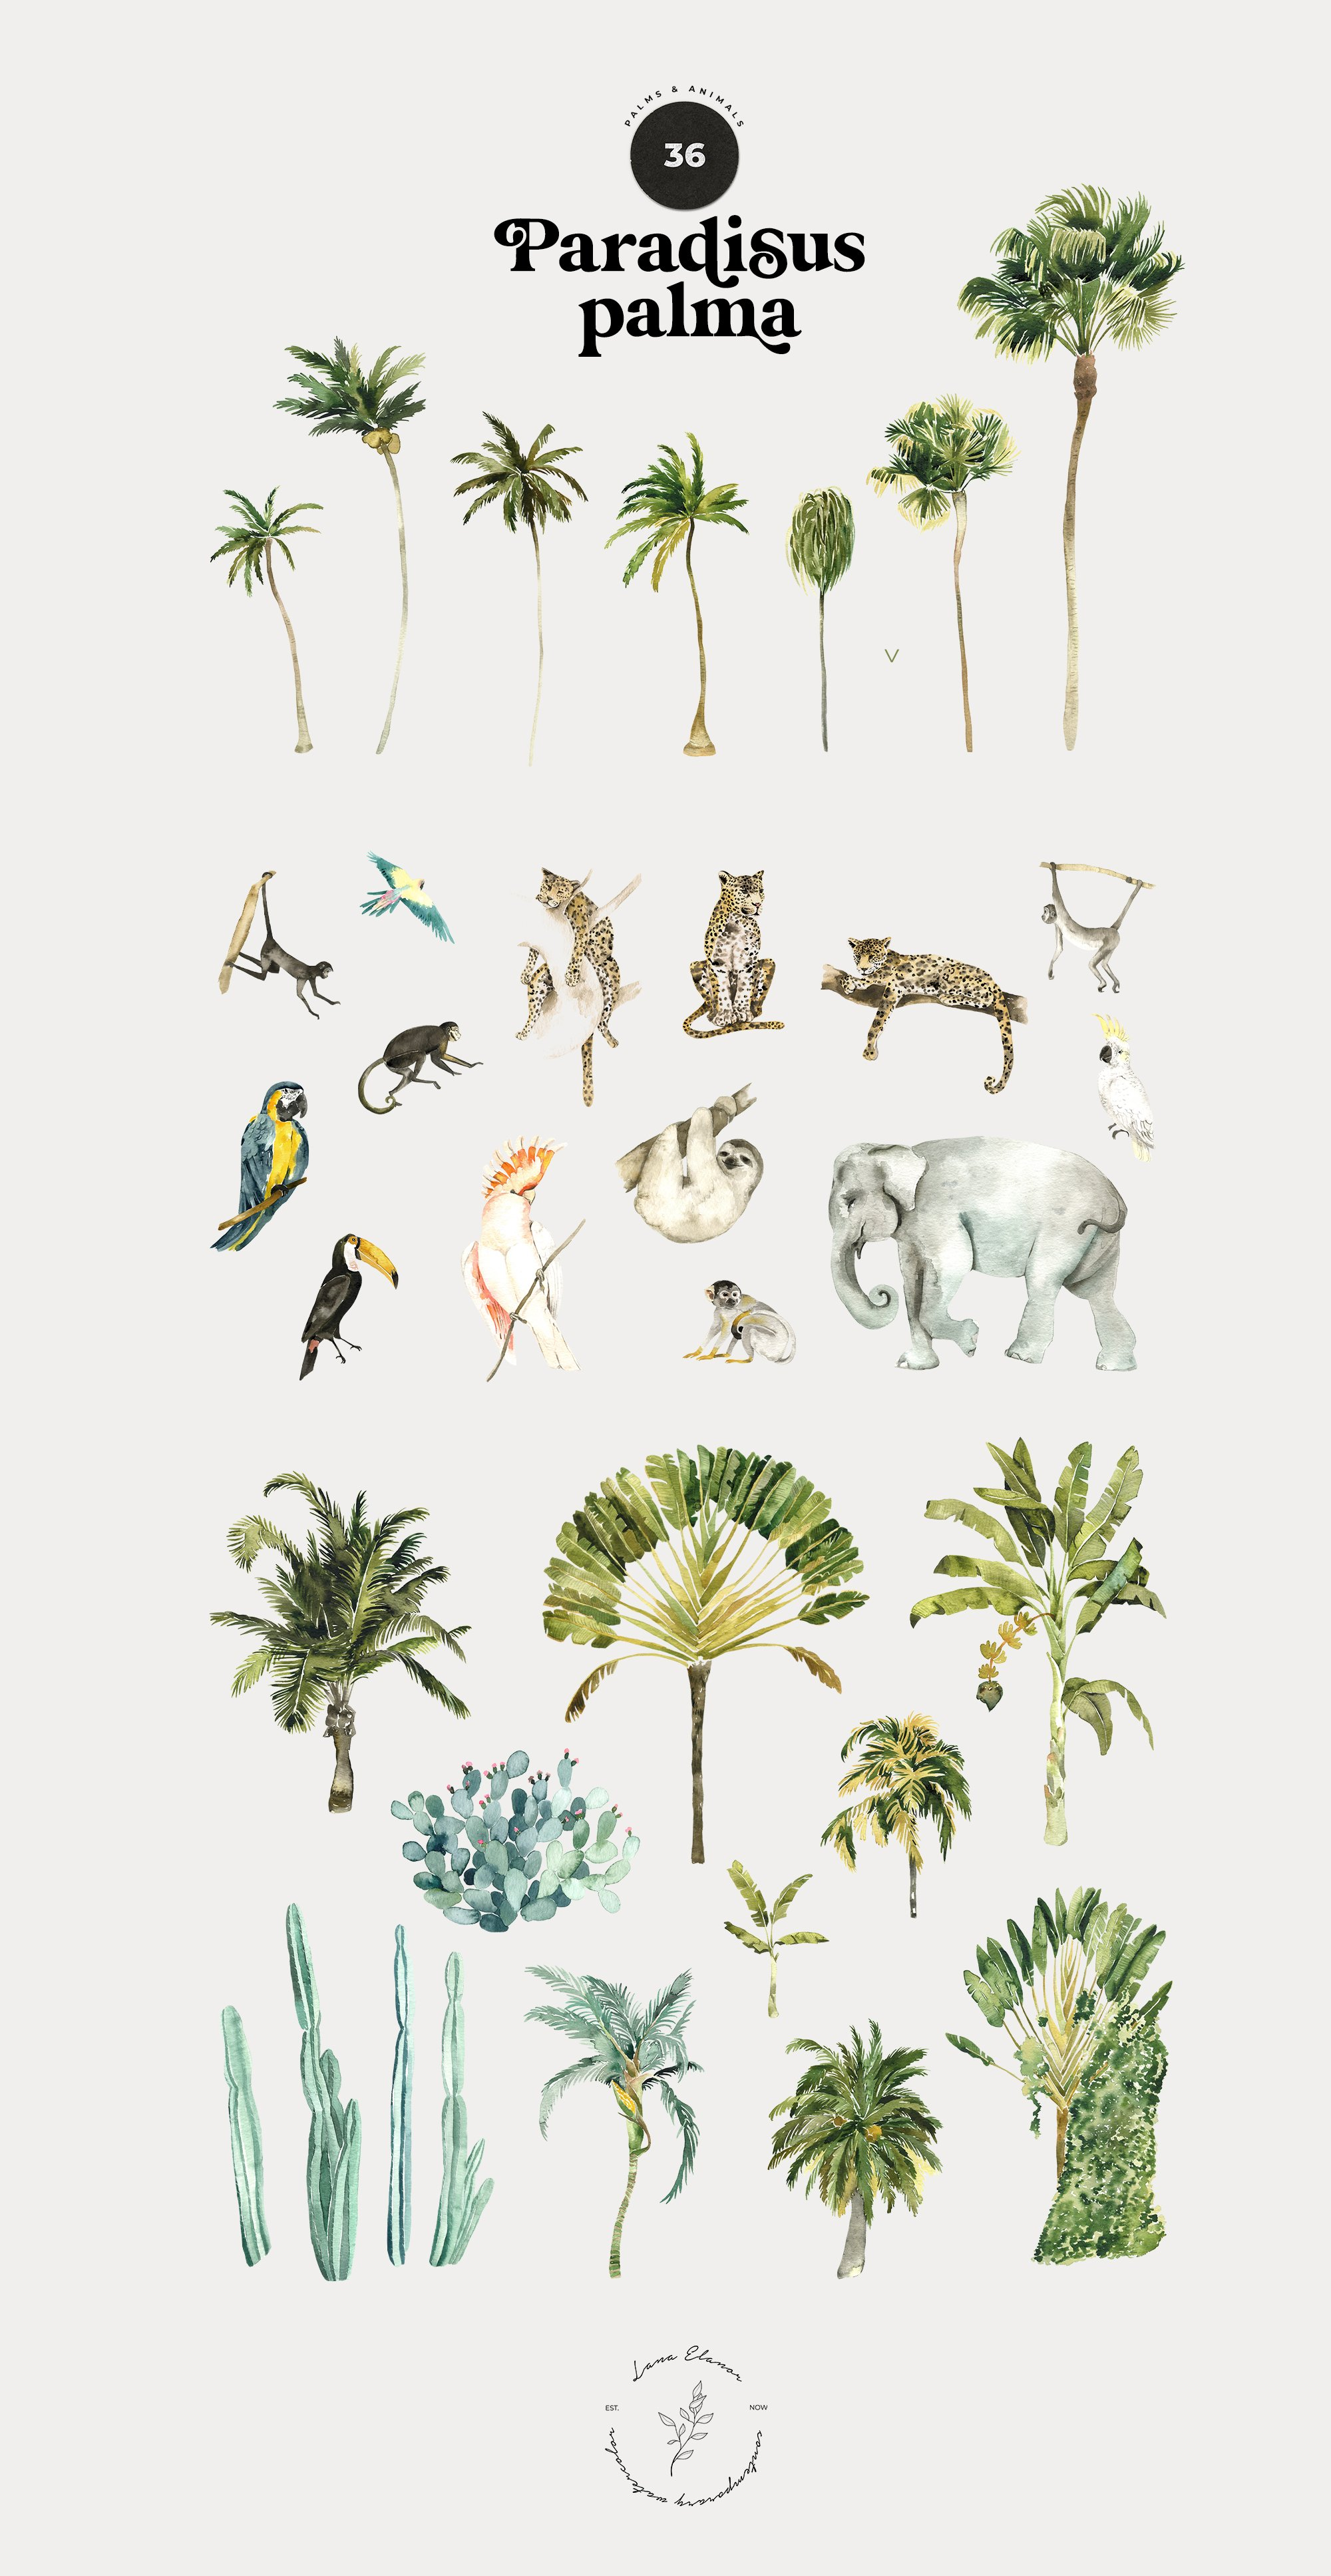 Paradisus Palma - Tropical Animals & Patterns